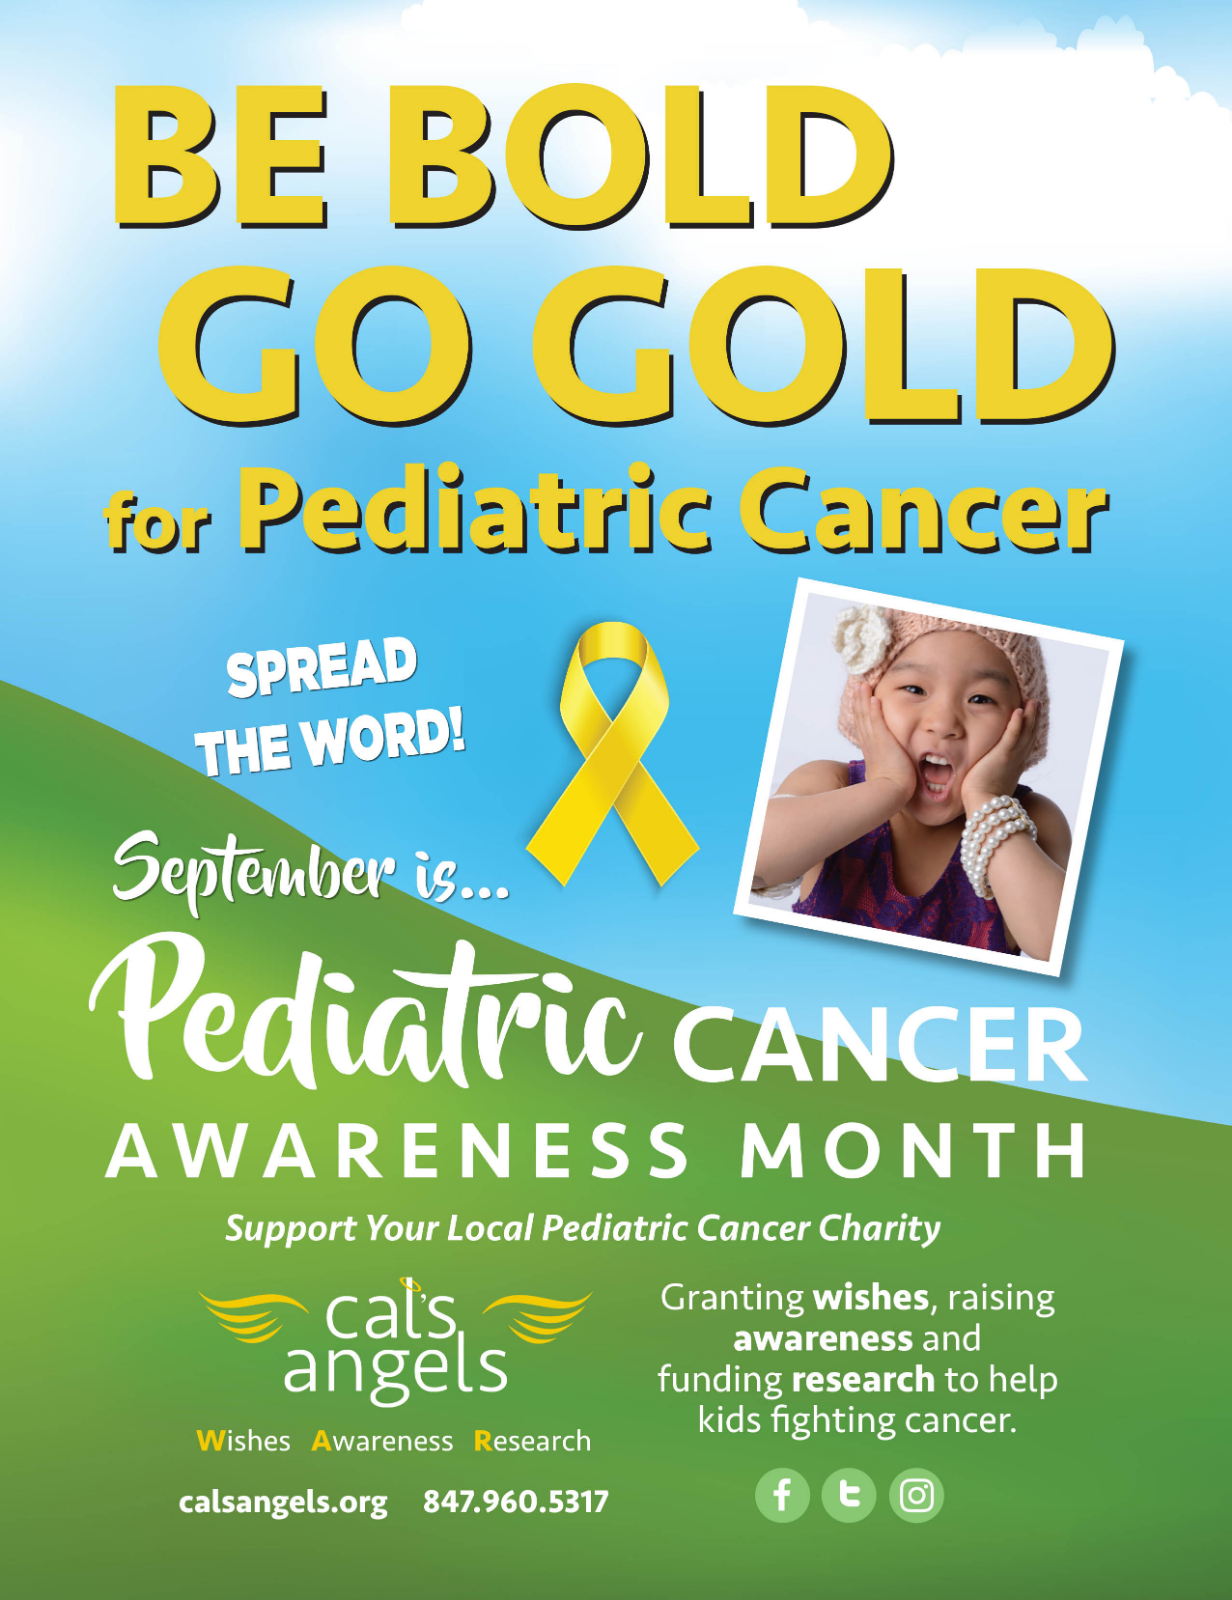 KHS is Going Gold for Pediatric Cancer Awareness!